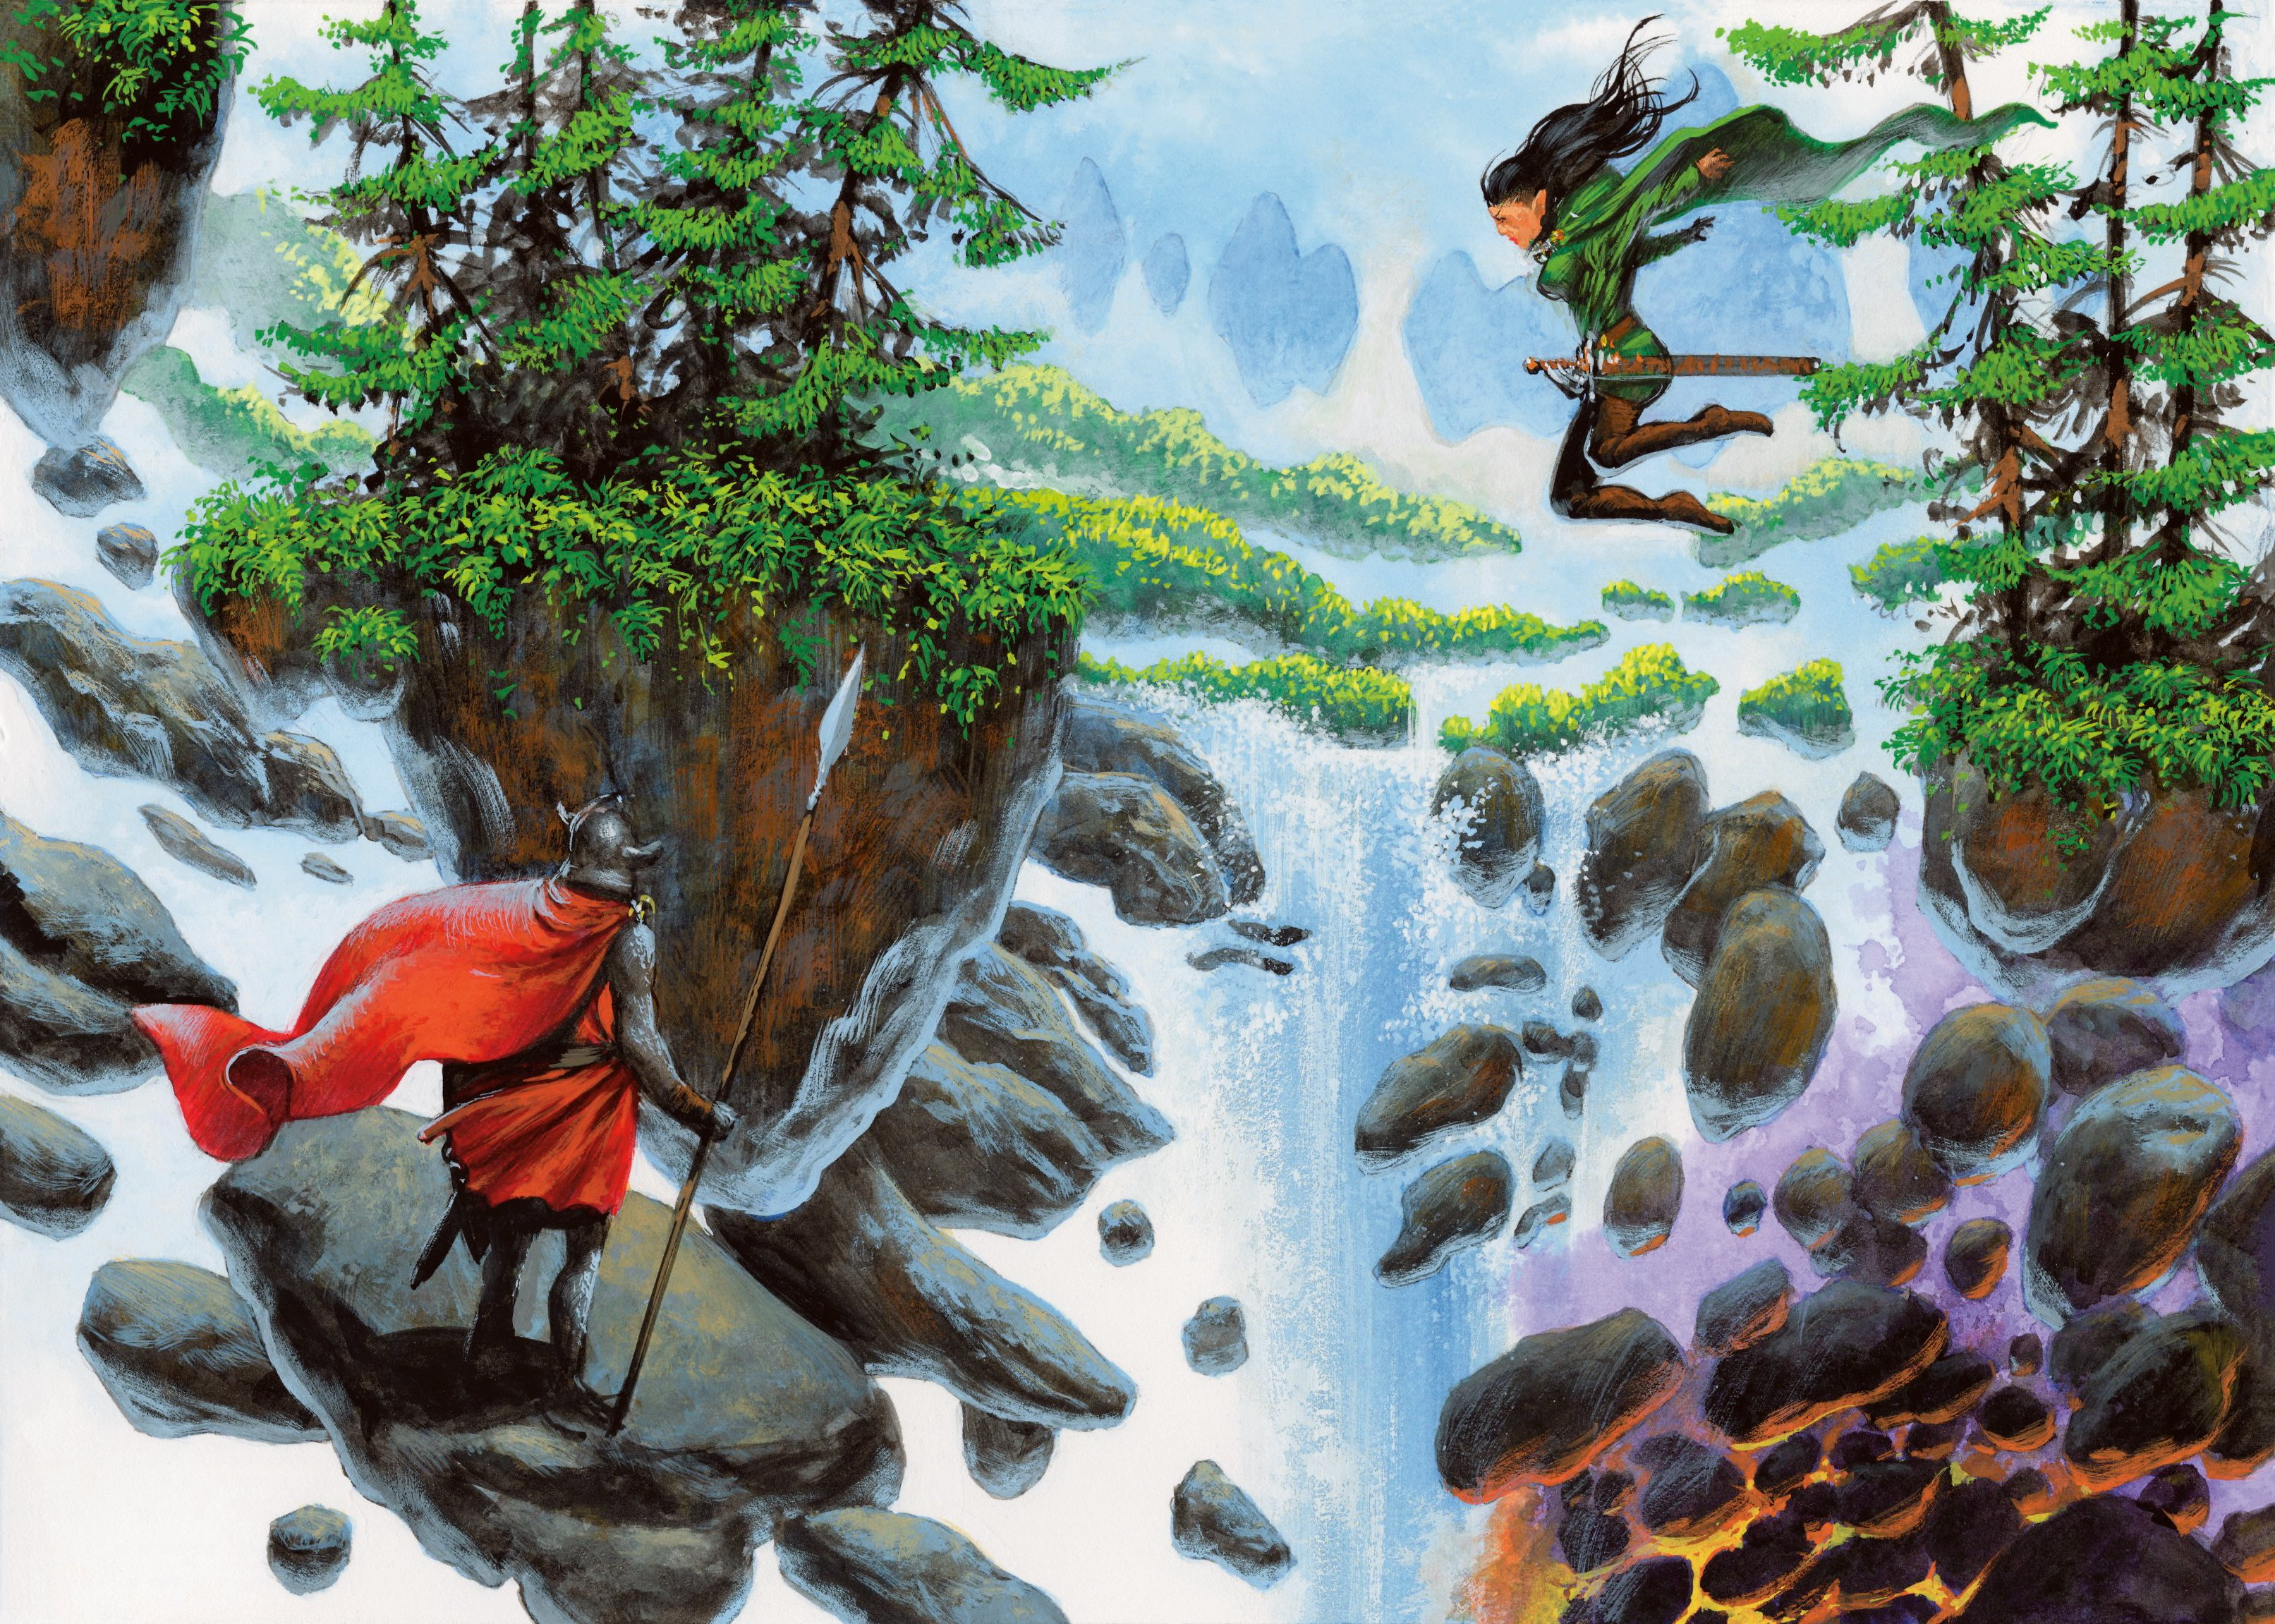 Adventurers traverse a landscape filled with floating fragments of a waterfall vista.